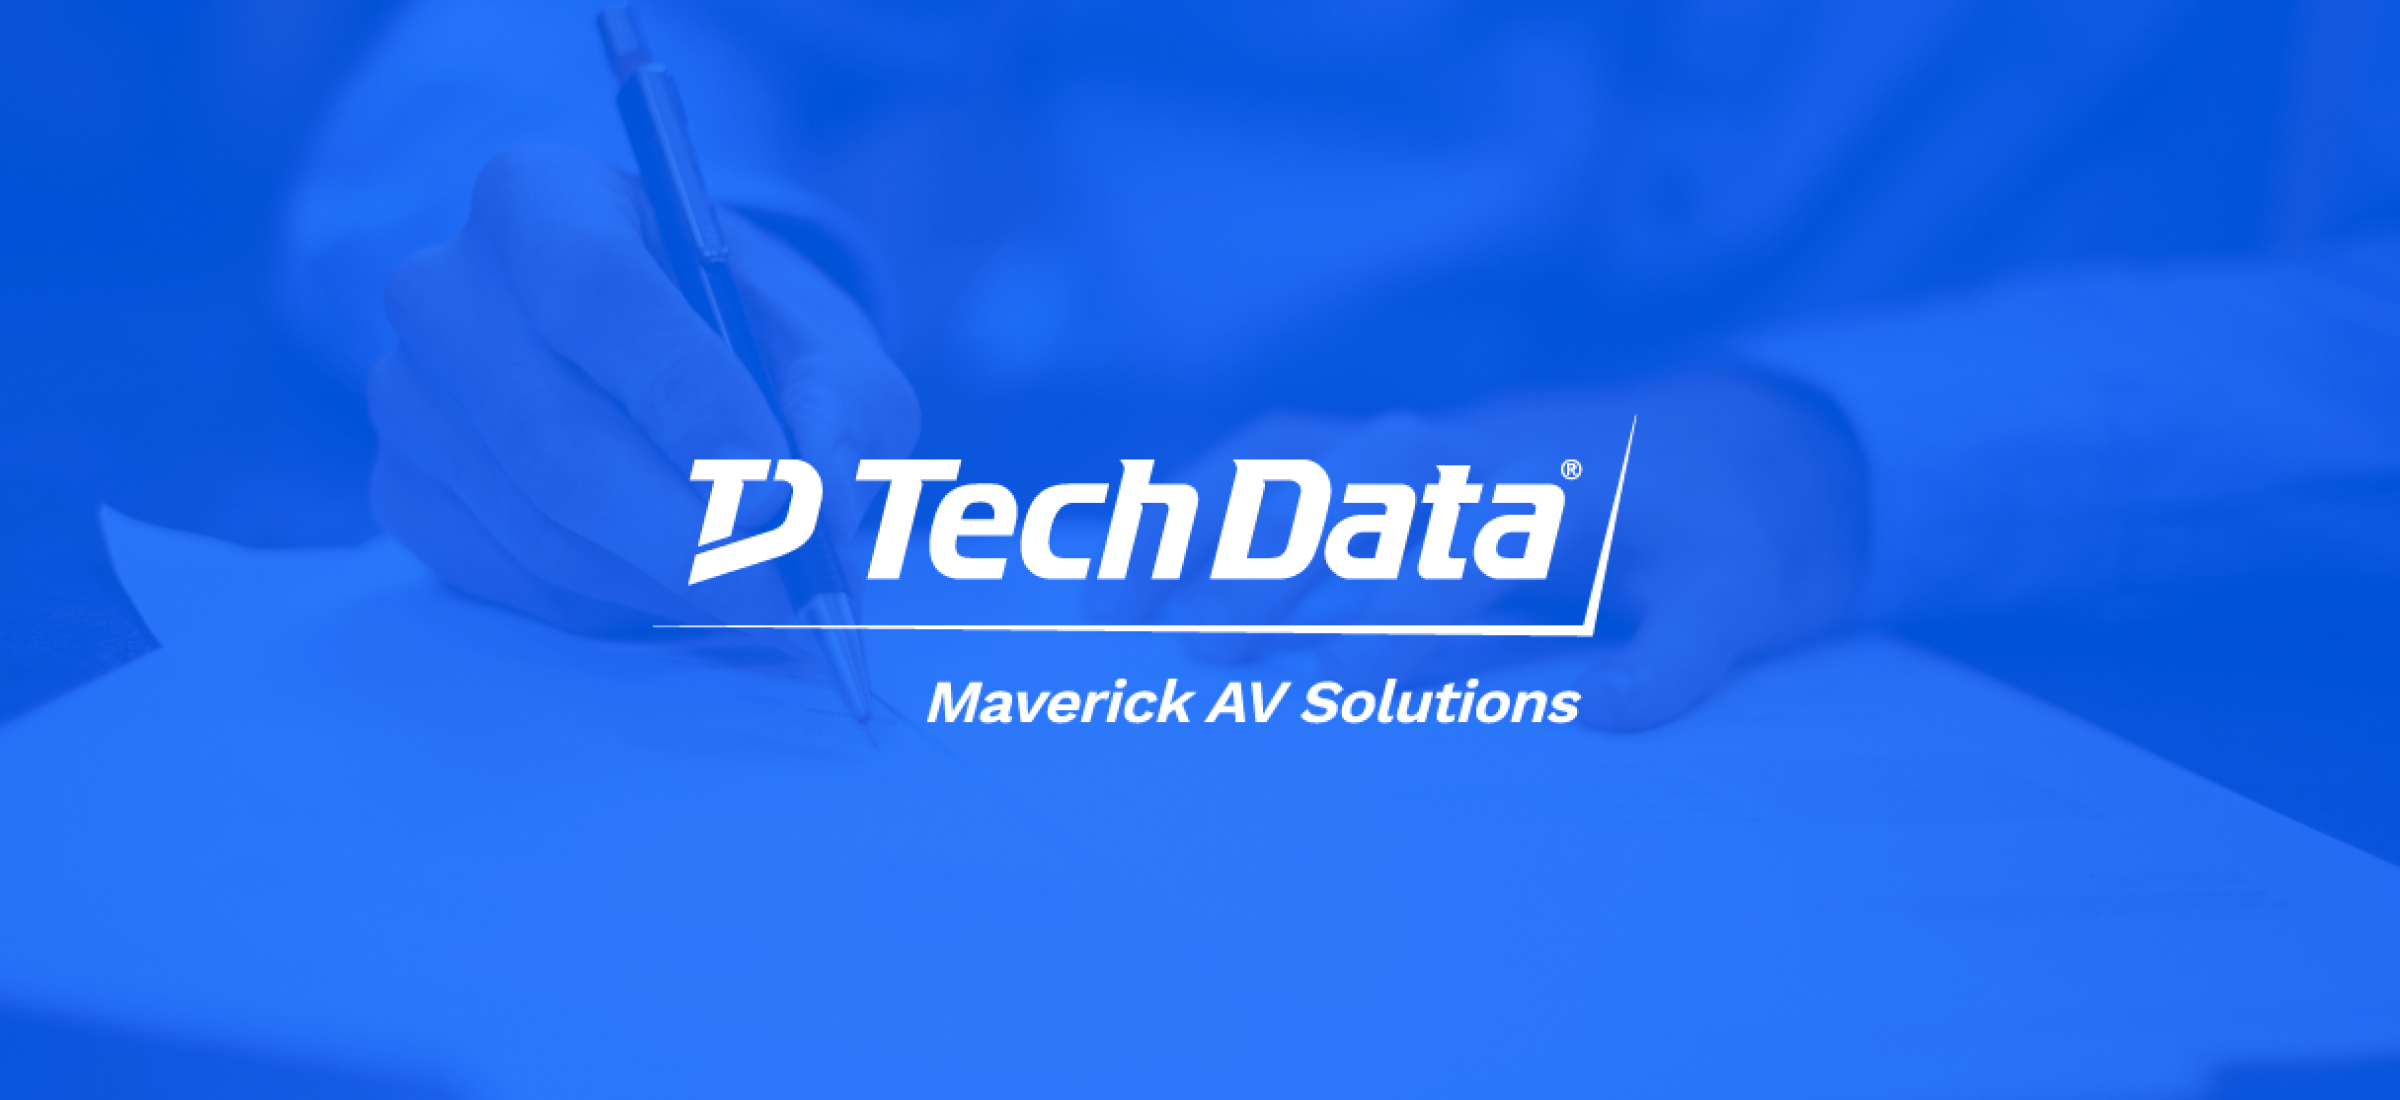 Airtame signs European partnership with Maverick AV Solutions